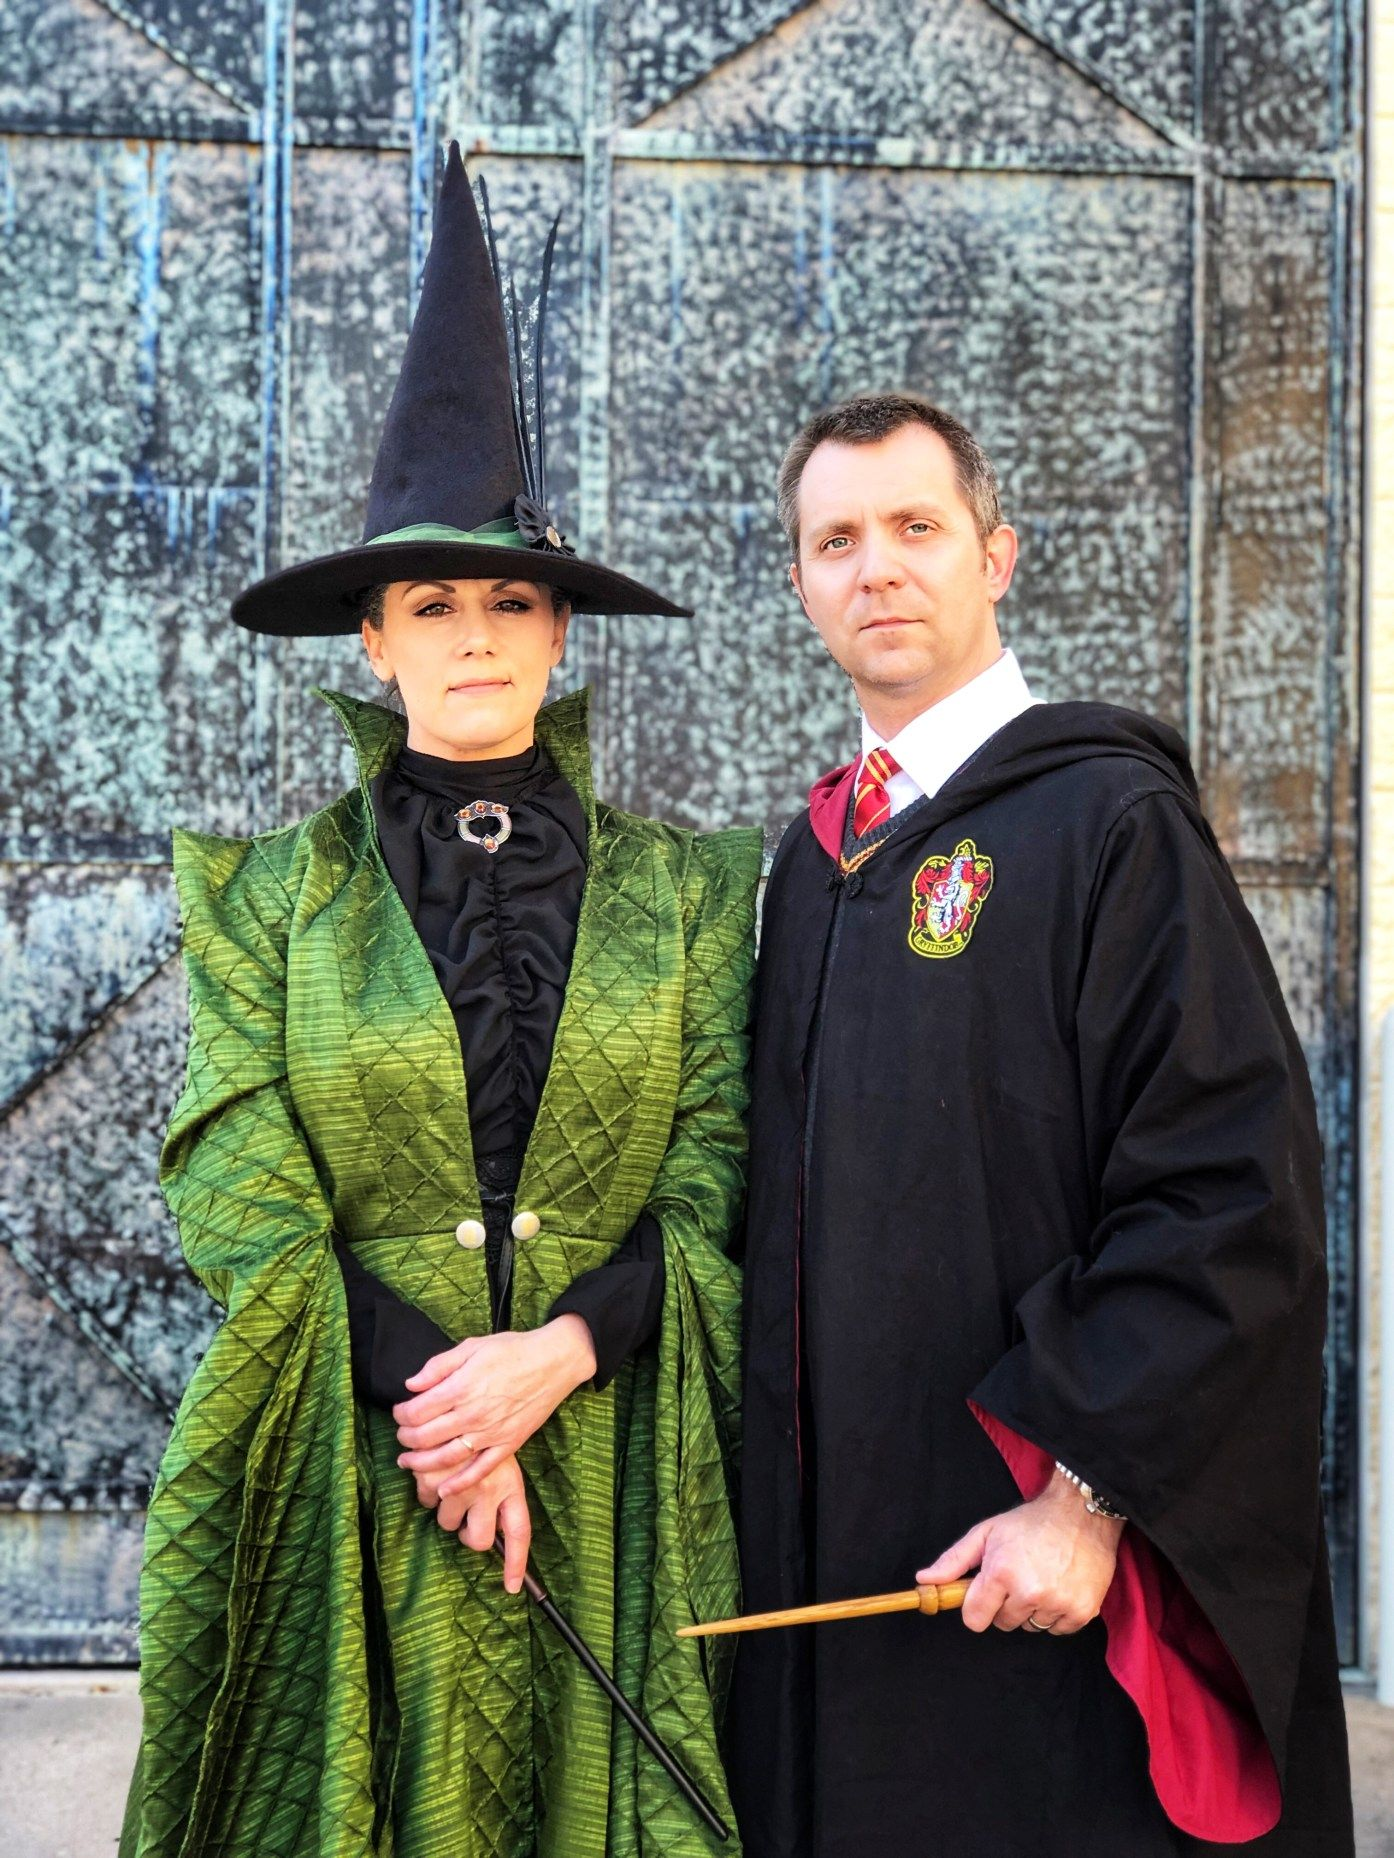 Costuming McGonagall from Harry Potter in 2020 Turtle